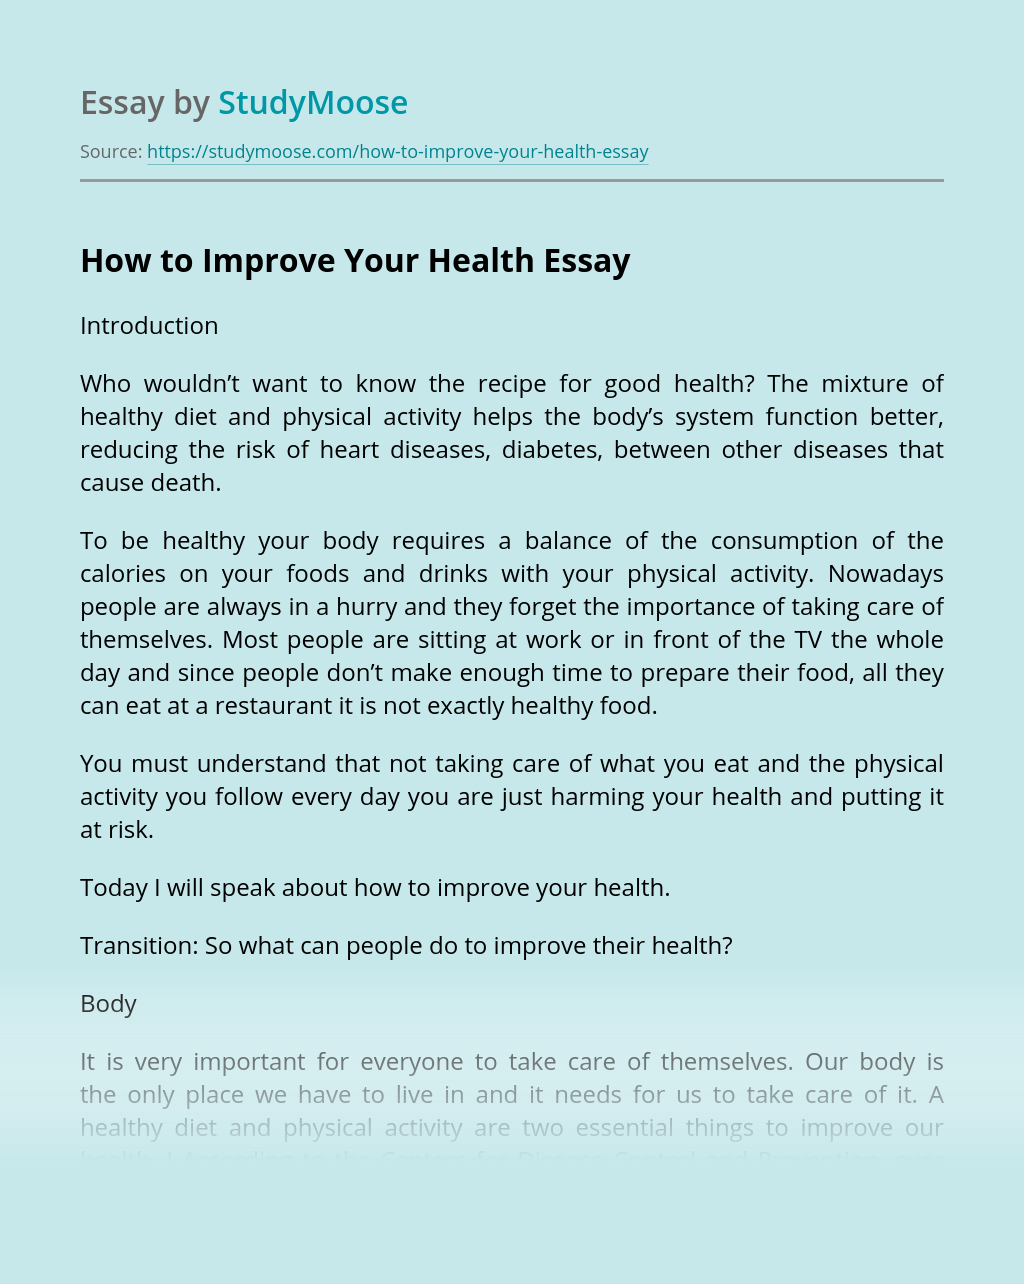 How to Improve Your Health